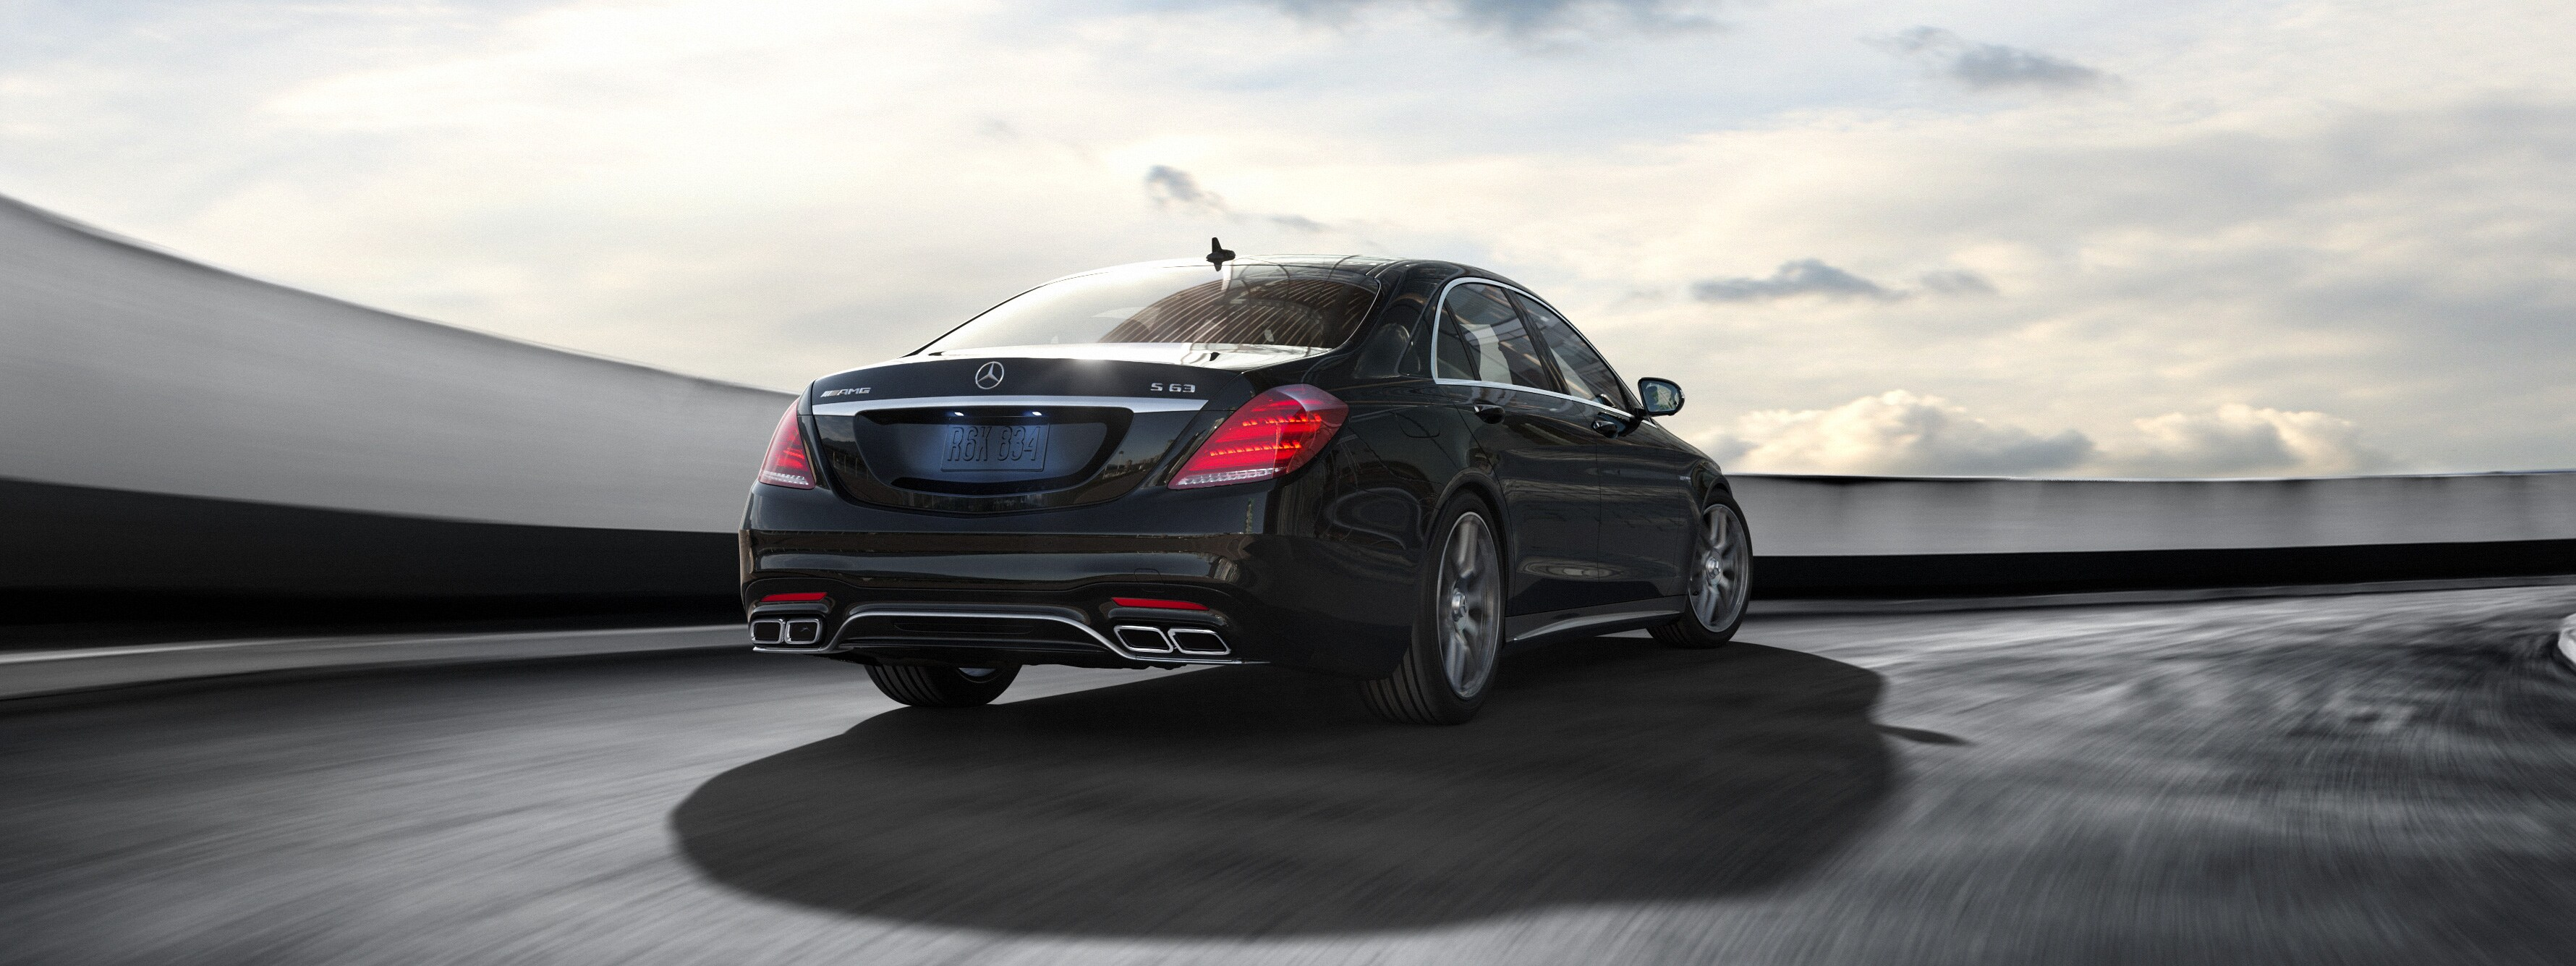 New Mercedes-Benz S-Class For Sale in Macon, GA | Mercedes ...